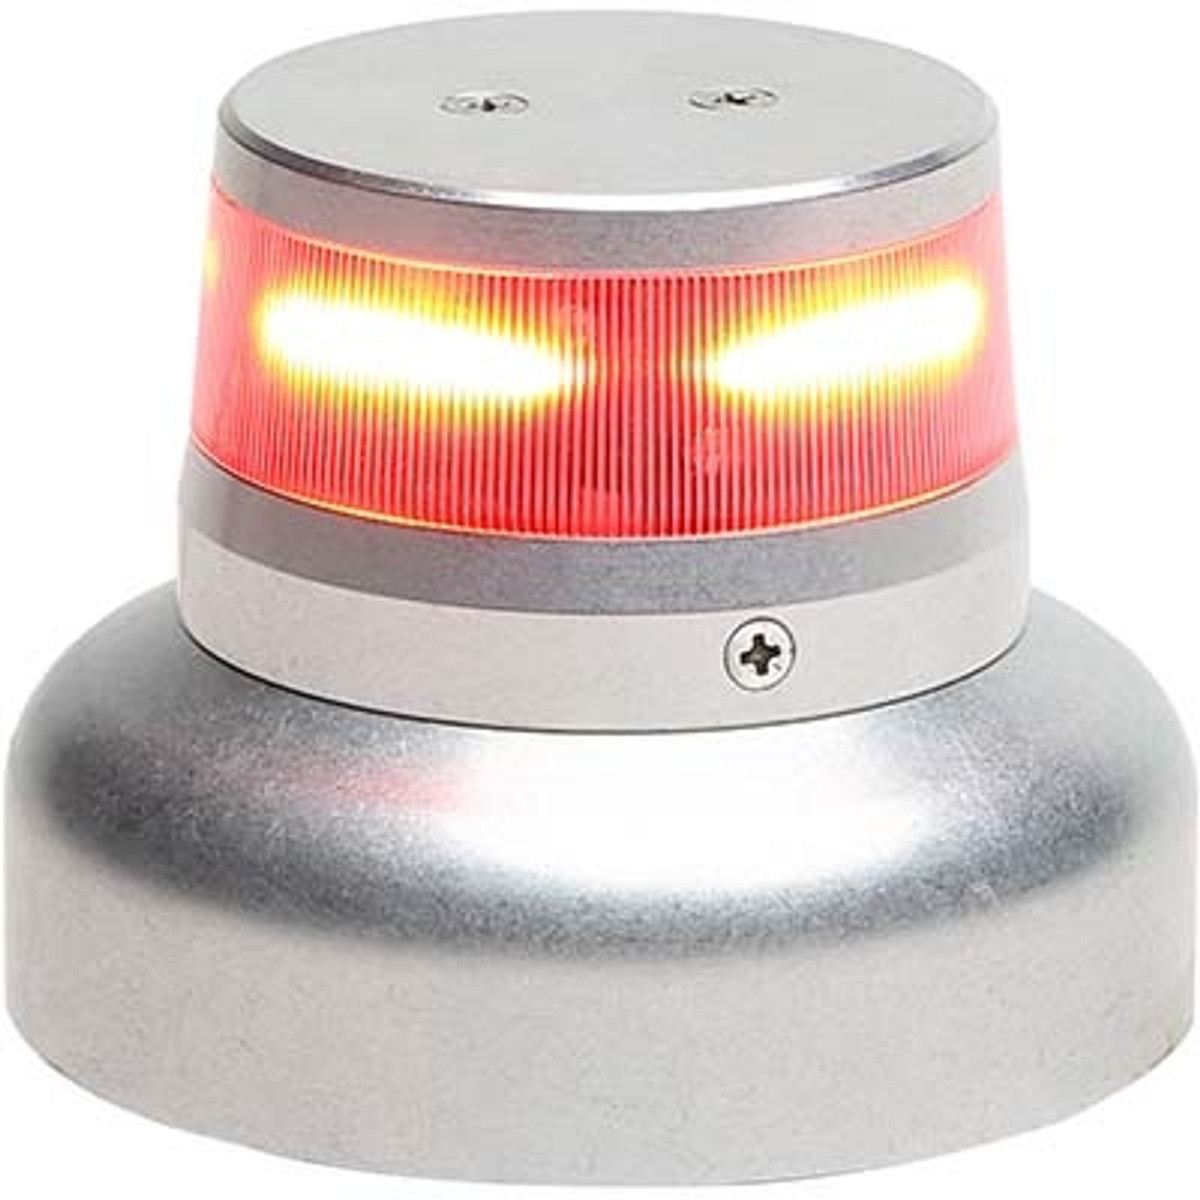 Whelen ORION 360 Beacon Part 01-0772010-13. Model OR36R2WL